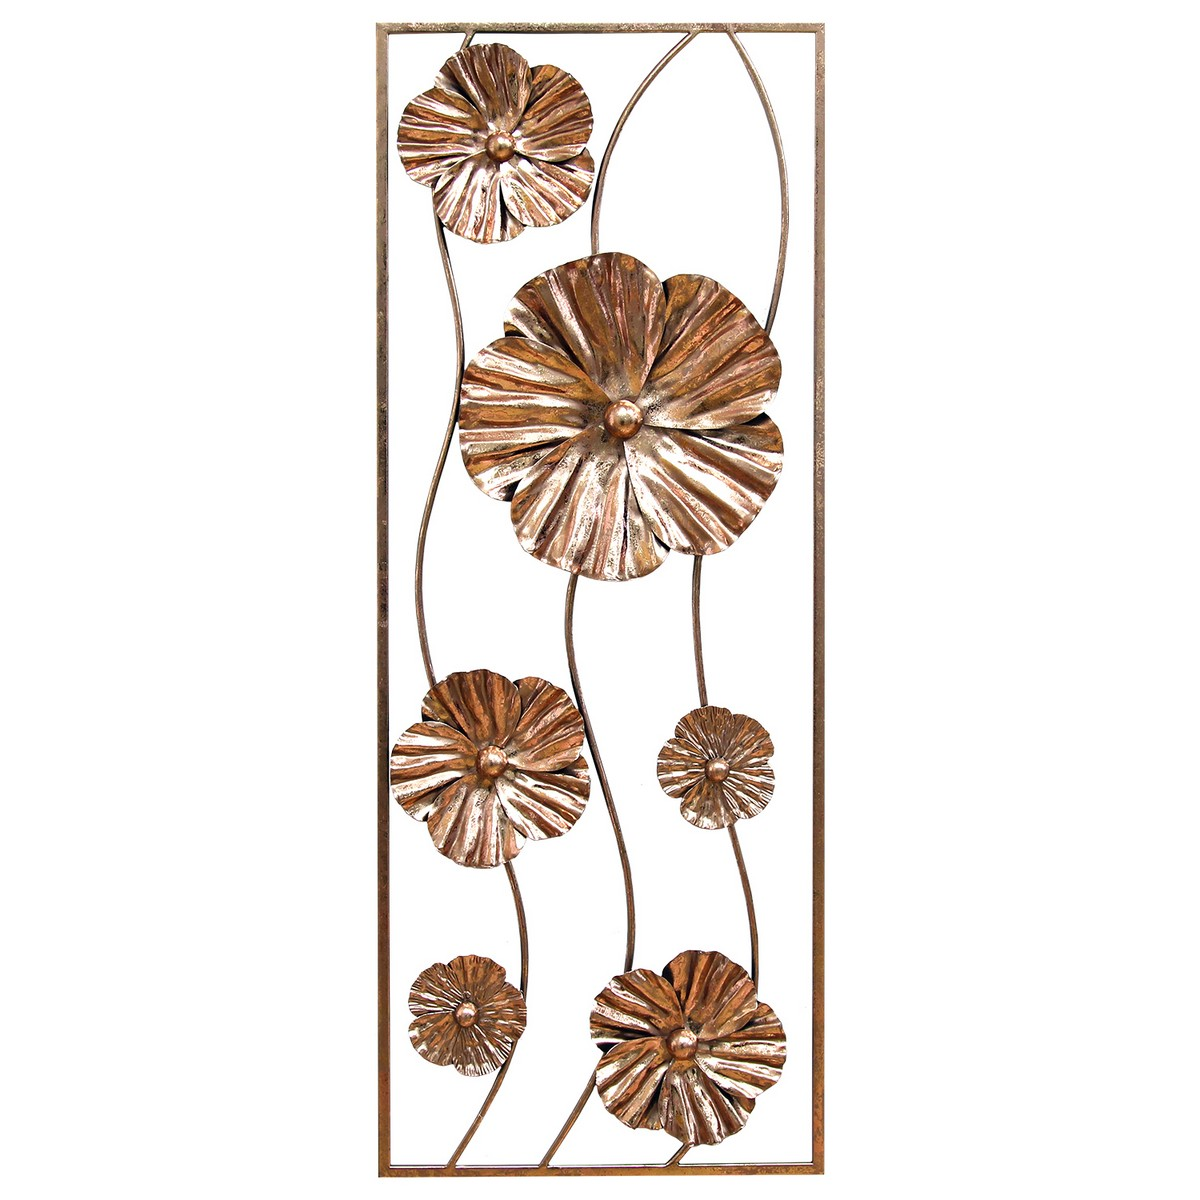 Stratton home decor rose gold flower panel wall decor for Decoration rose gold